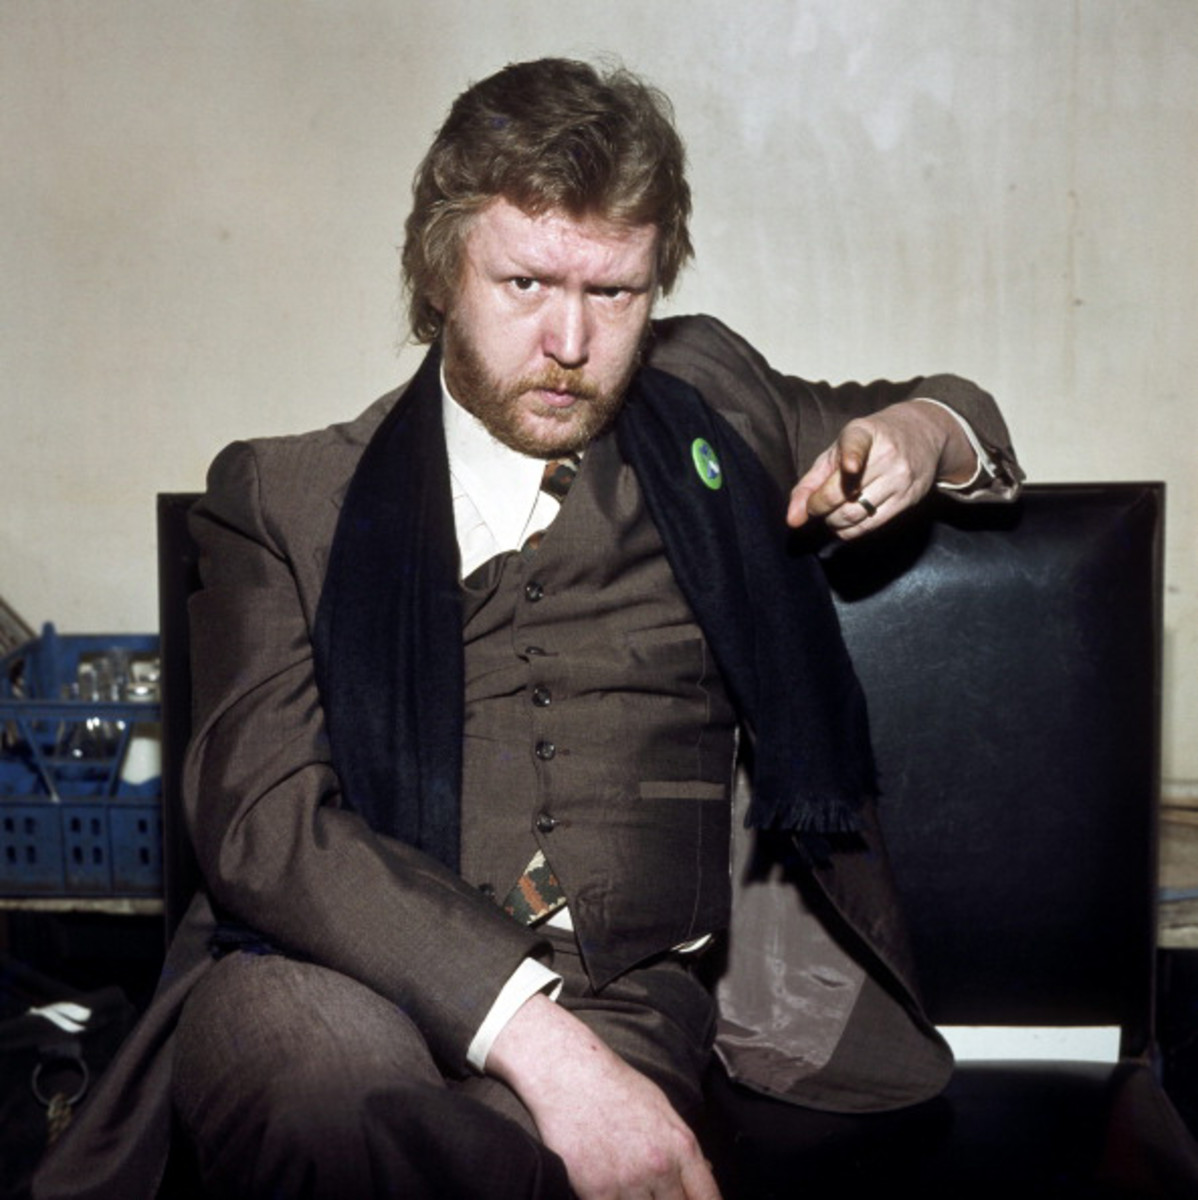 Harry Nilsson. Photo by George Wilkes/Hulton Archive/Getty Images